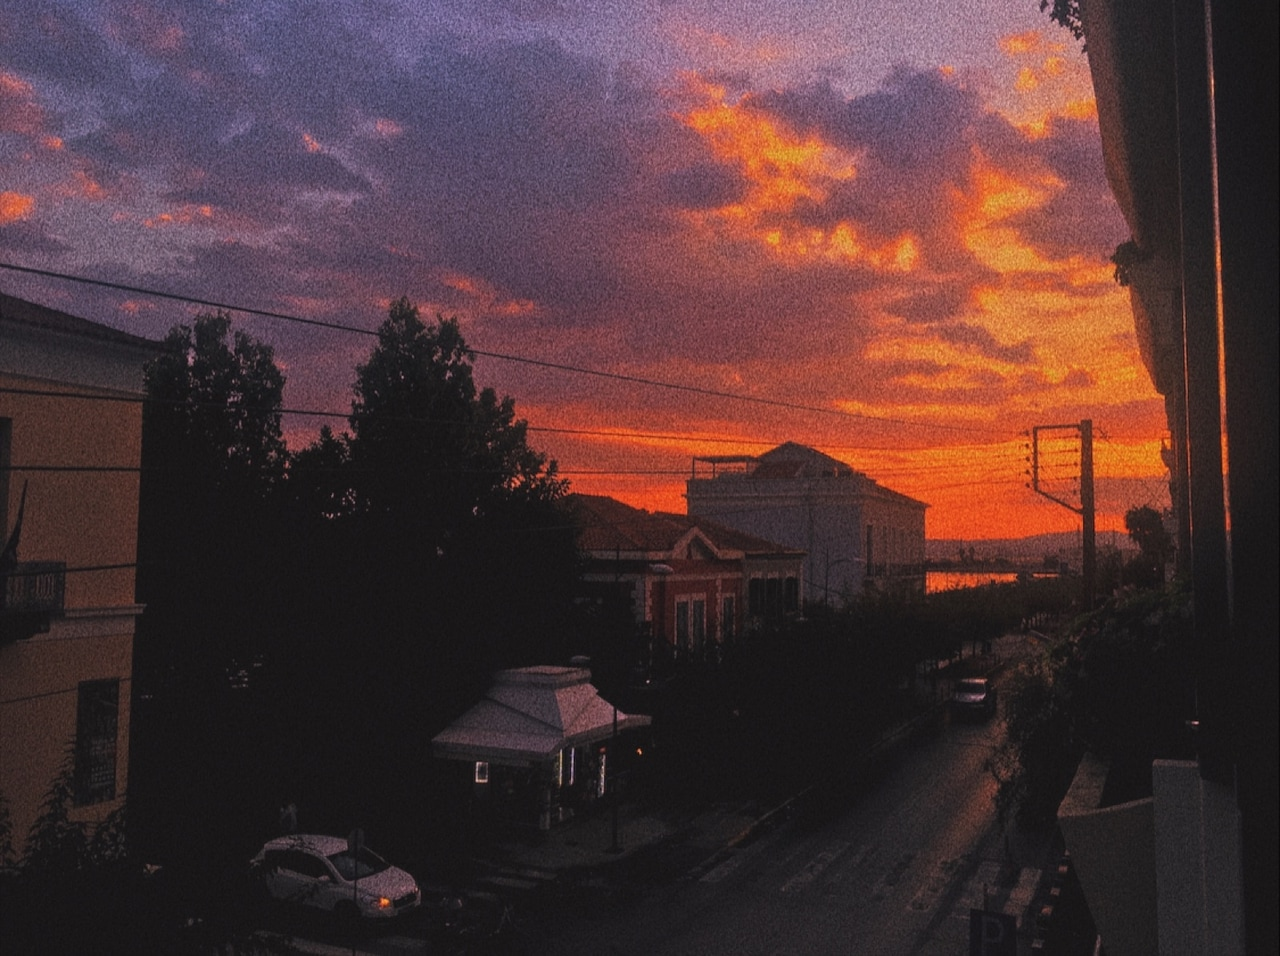 tumblr, Greece, red and violet